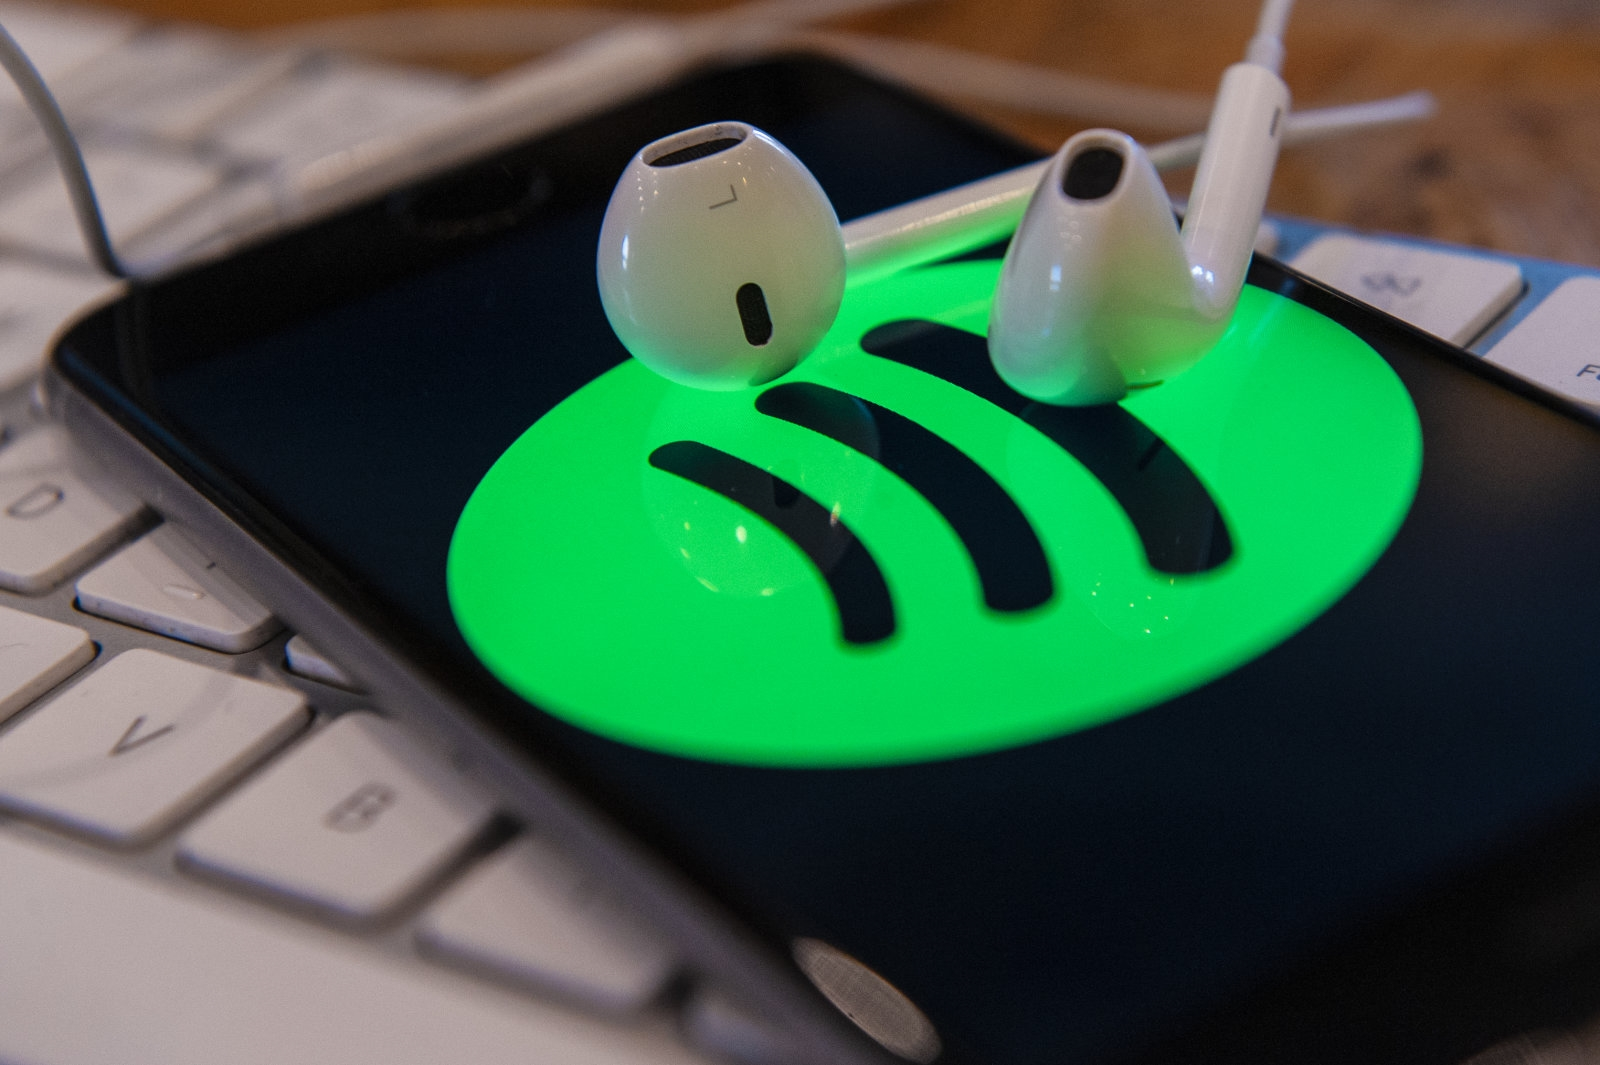 EU set to investigate Apple over Spotify's competition claims | DeviceDaily.com